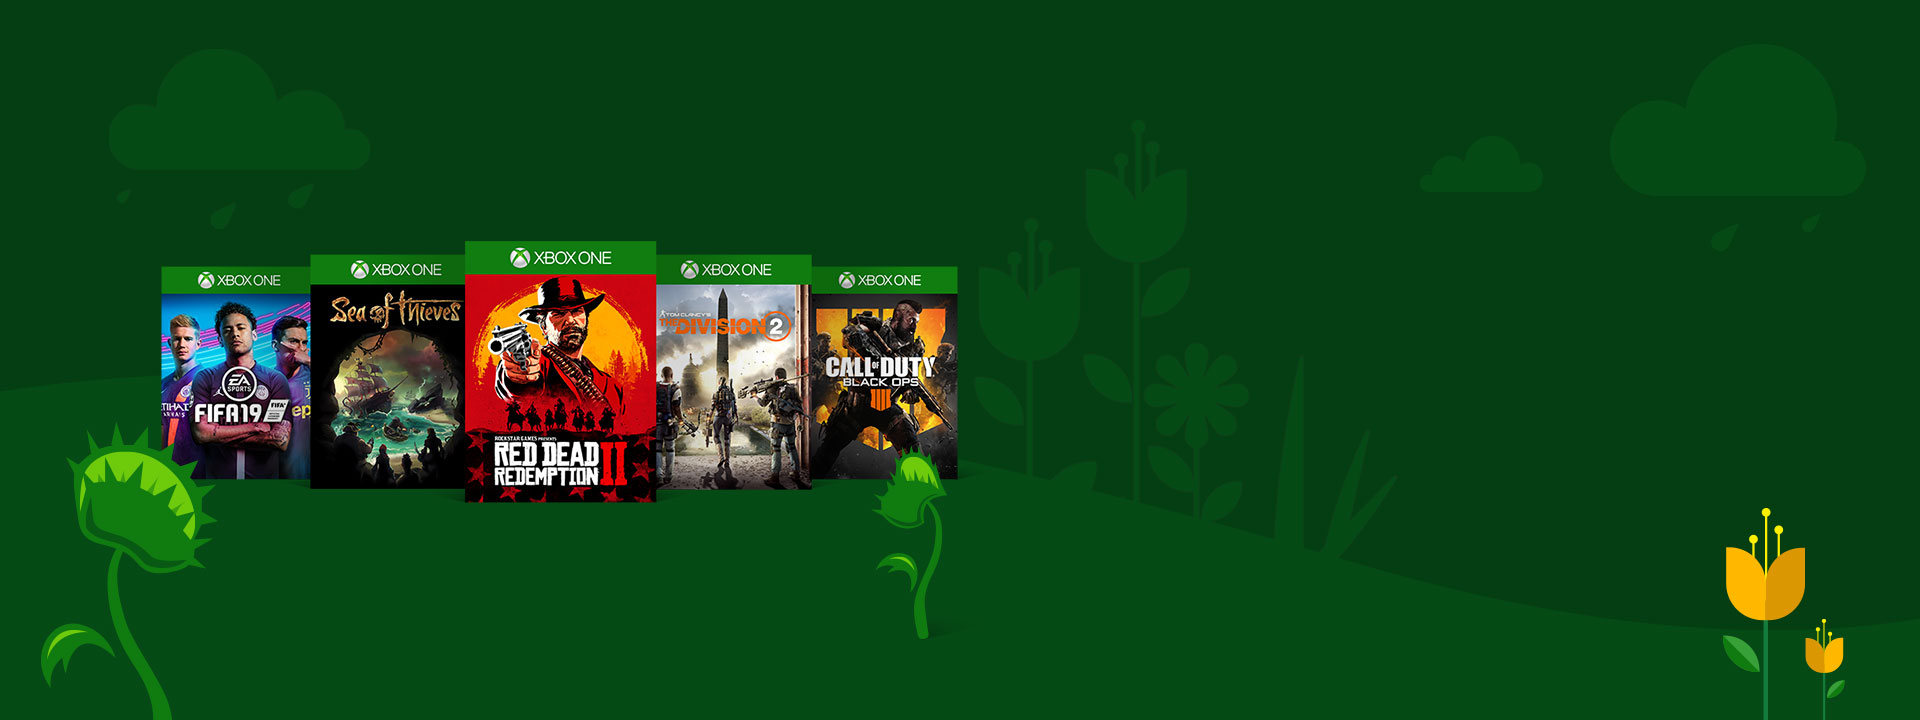 Box shots of Fifa 19, Sea of Thieves, Red Dead Redemption II, The Division 2, and Call of  Duty: Black Ops 4 on a green spring-themed background that features matching visuals, like Venus flytraps and yellow tulips